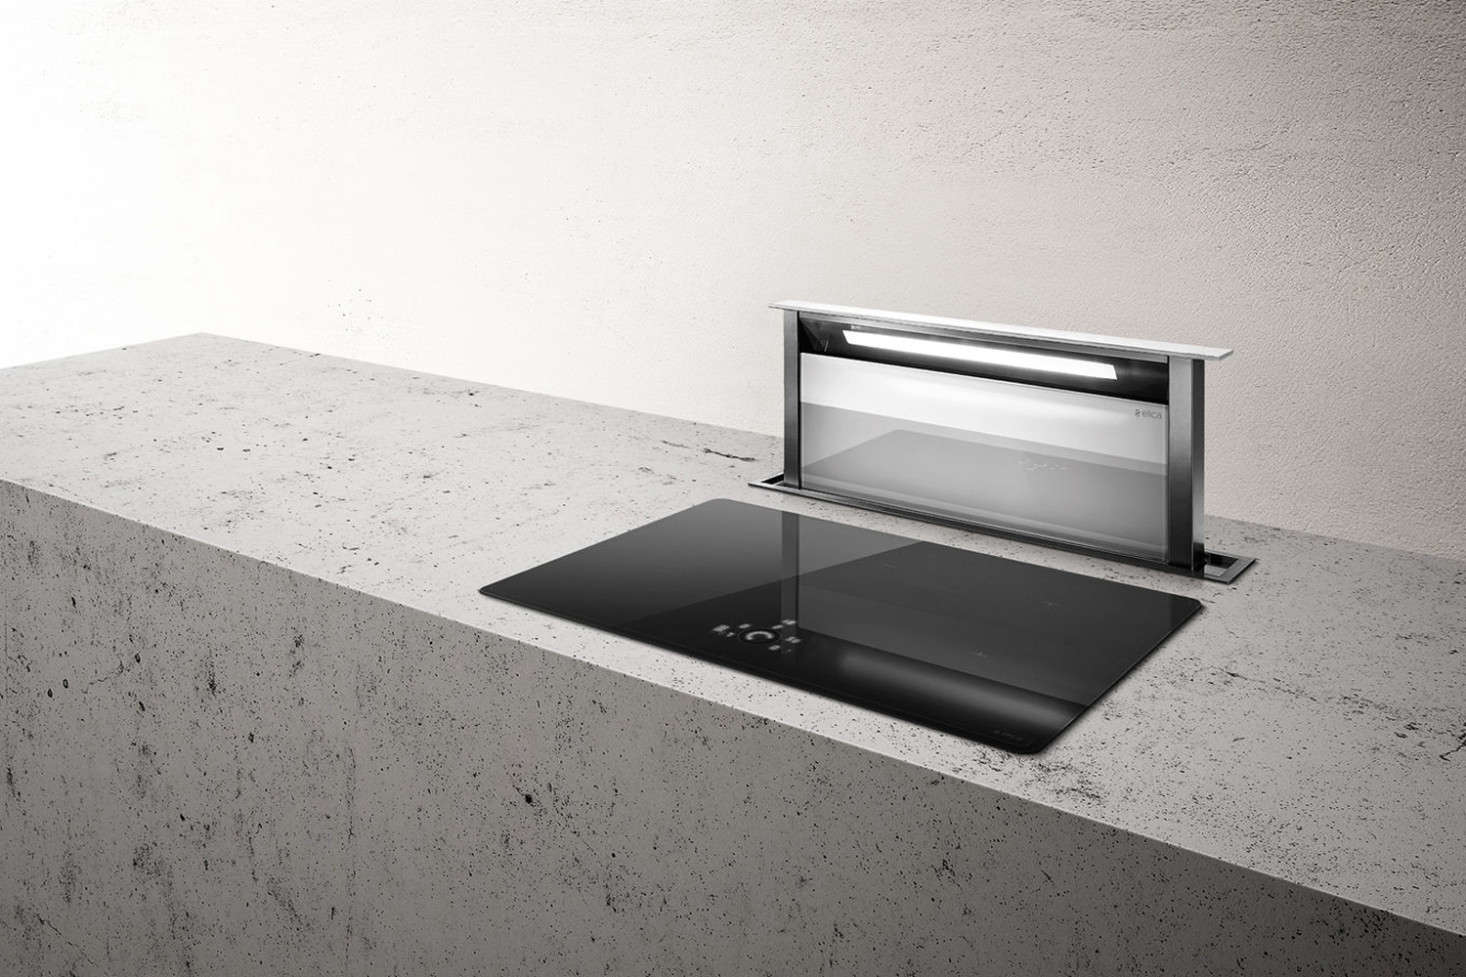 The adagio vista downdraft range vent from elica has a touch control interface and comes in